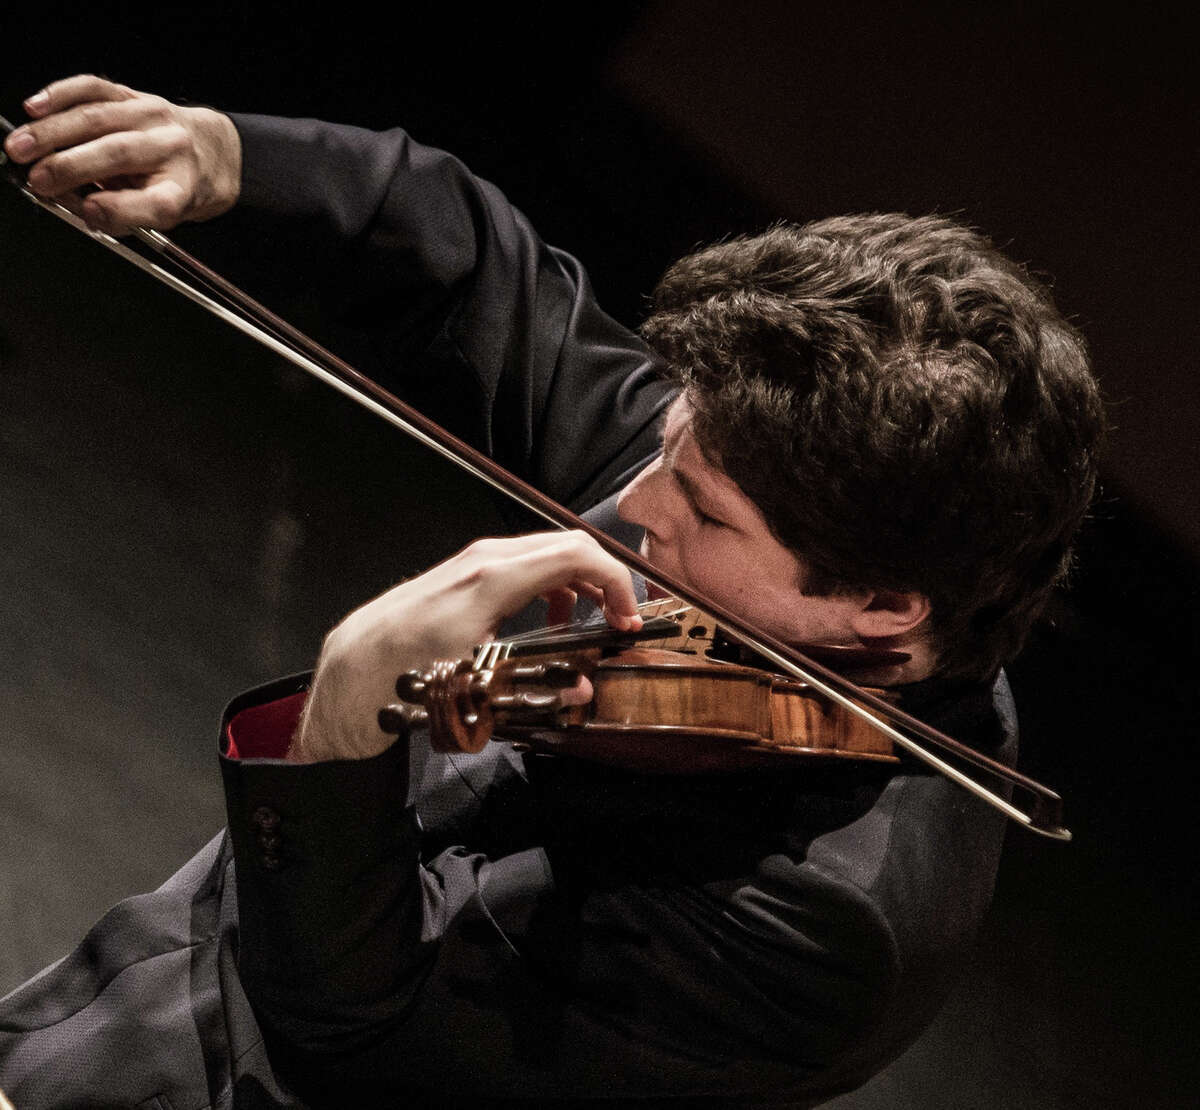 Violinist Augustin Hadelich joins the San Antonio Symphony this weekend for a performance of Tchaikovsky's Concerto for Violin. The German violinist studied at Julliard and won International Violin Competition of Indianapolis in 2006. He has played with the National Symphony Orchestra, the Los Angeles Philharmonic and the New York Philharmonic. Last year, he released a duets album with pianist Joyce Yang. The program also holds Kabalevsky's Overture to Colas Breugnon and Shostakovich's Symphony No. 12. Sebastian Lang-Lessing conducts. 8 p.m. Friday and Saturday. Tobin Center for the Performing Arts. $25-$81. tobi.tobincenter.org-- Jim Kiest